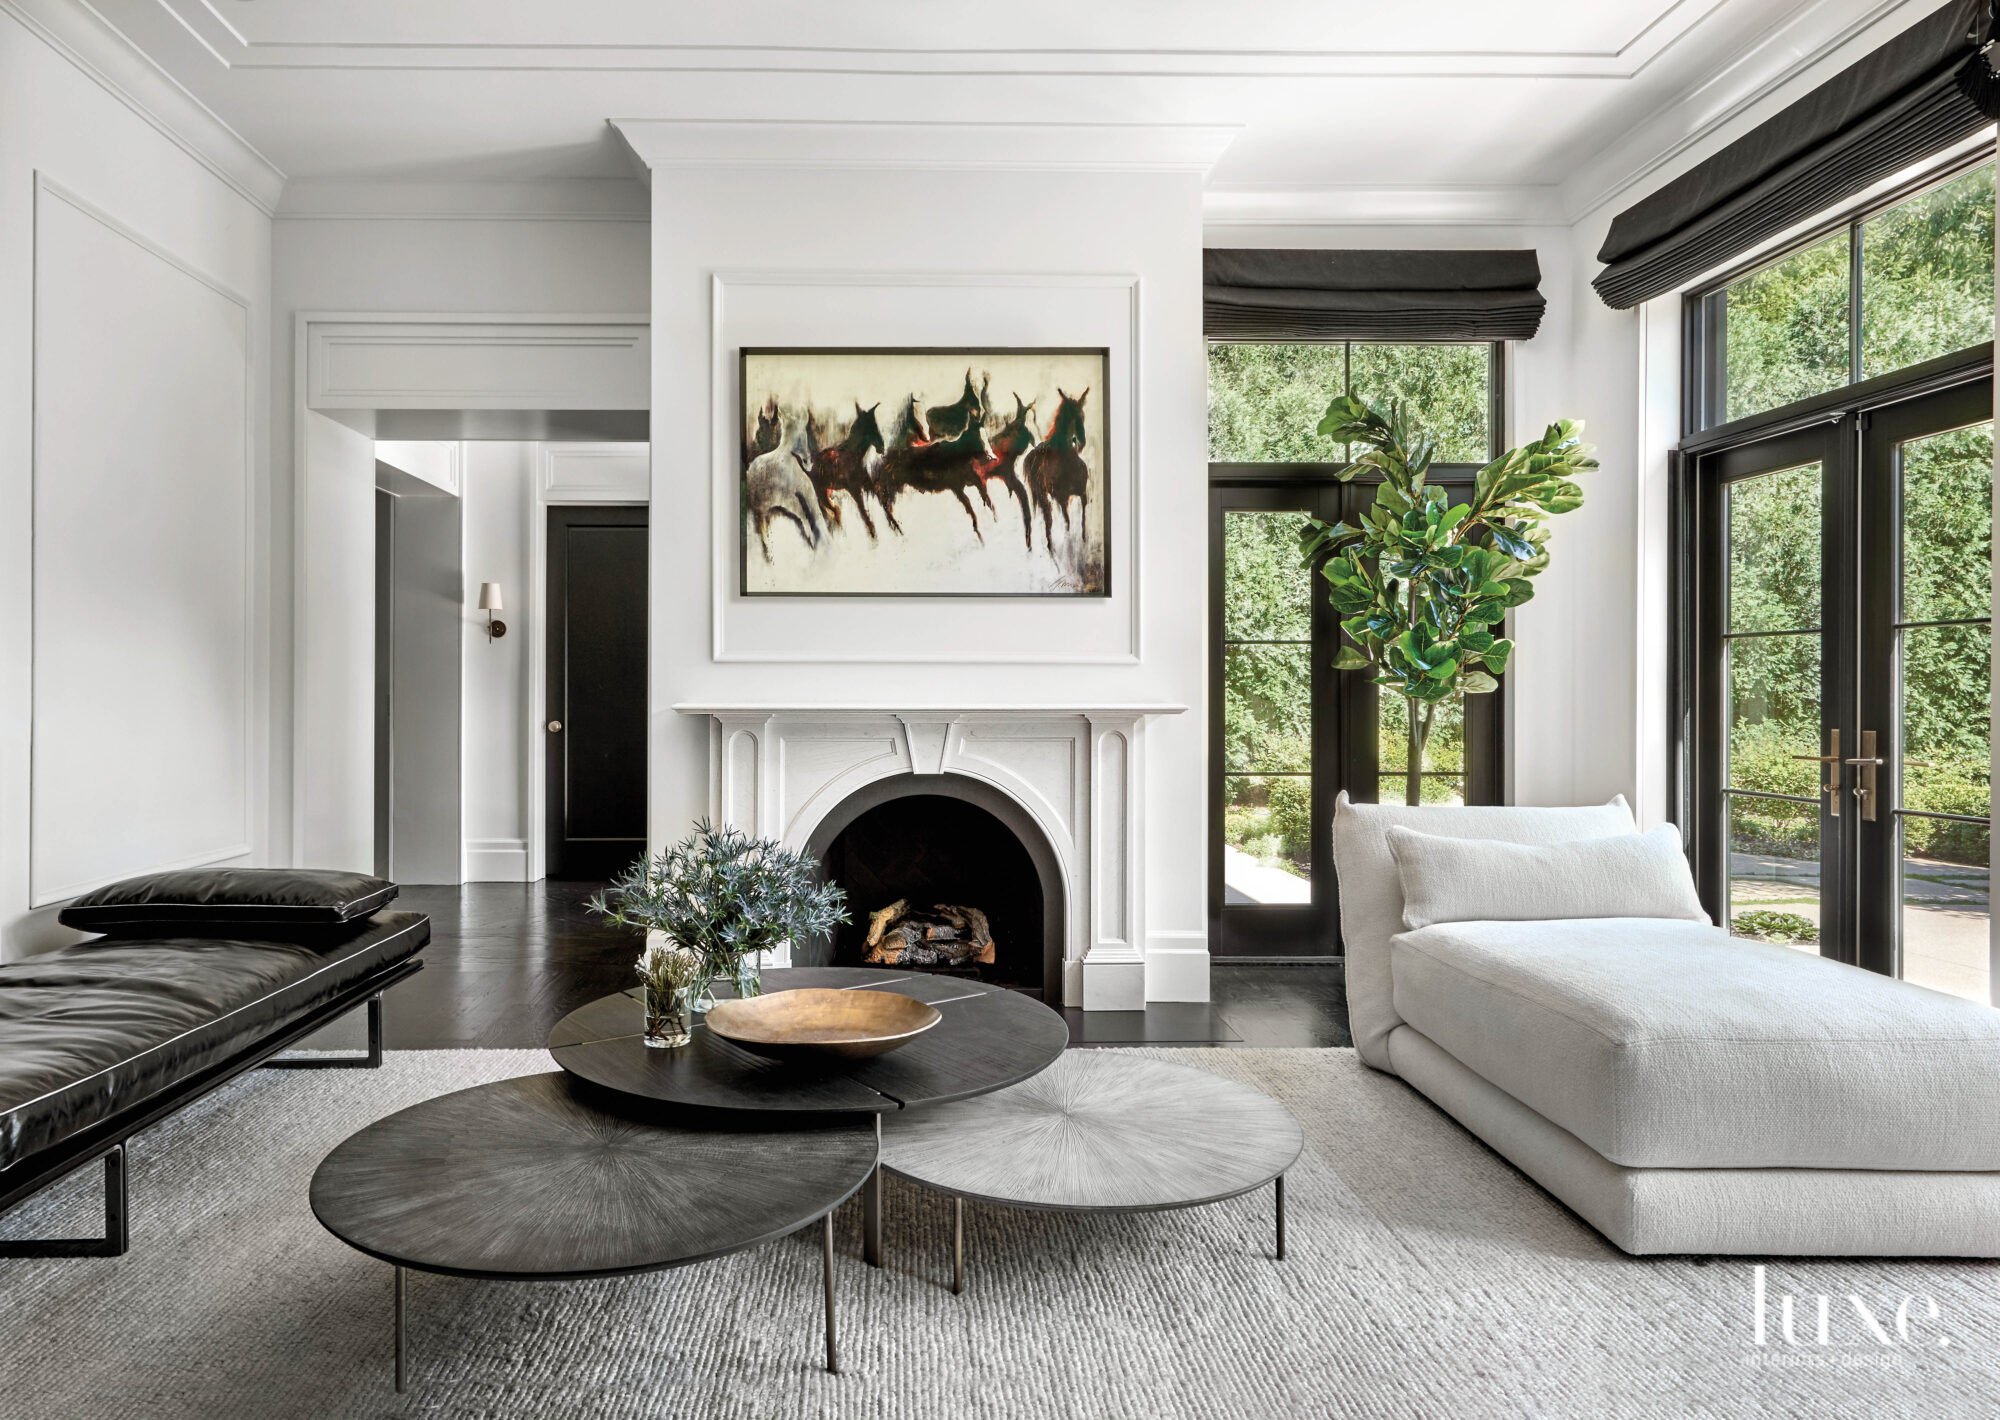 Neutral living room done in shades of black, gray and white.